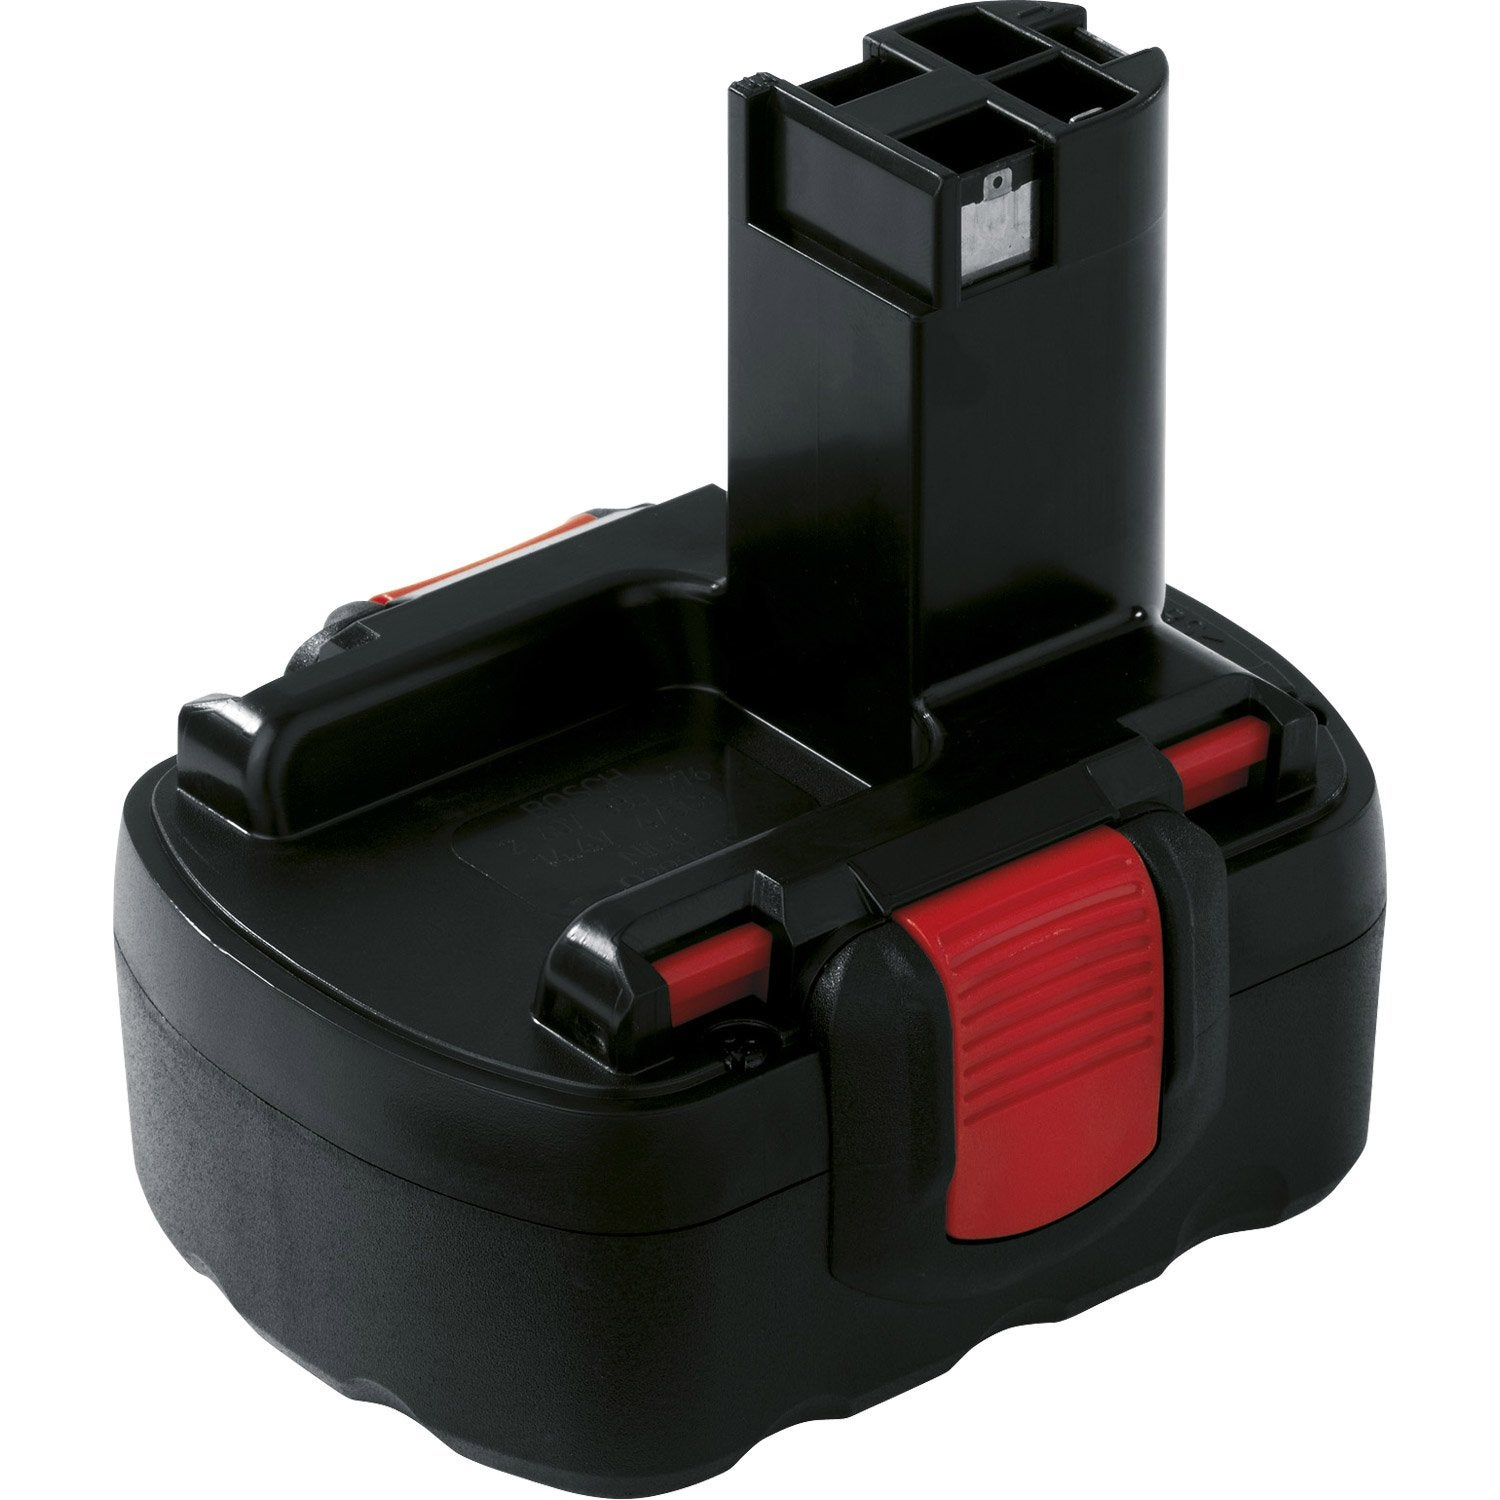 Batterie perceuse bosch psr 14 4 - Batterie perceuse bosch ...